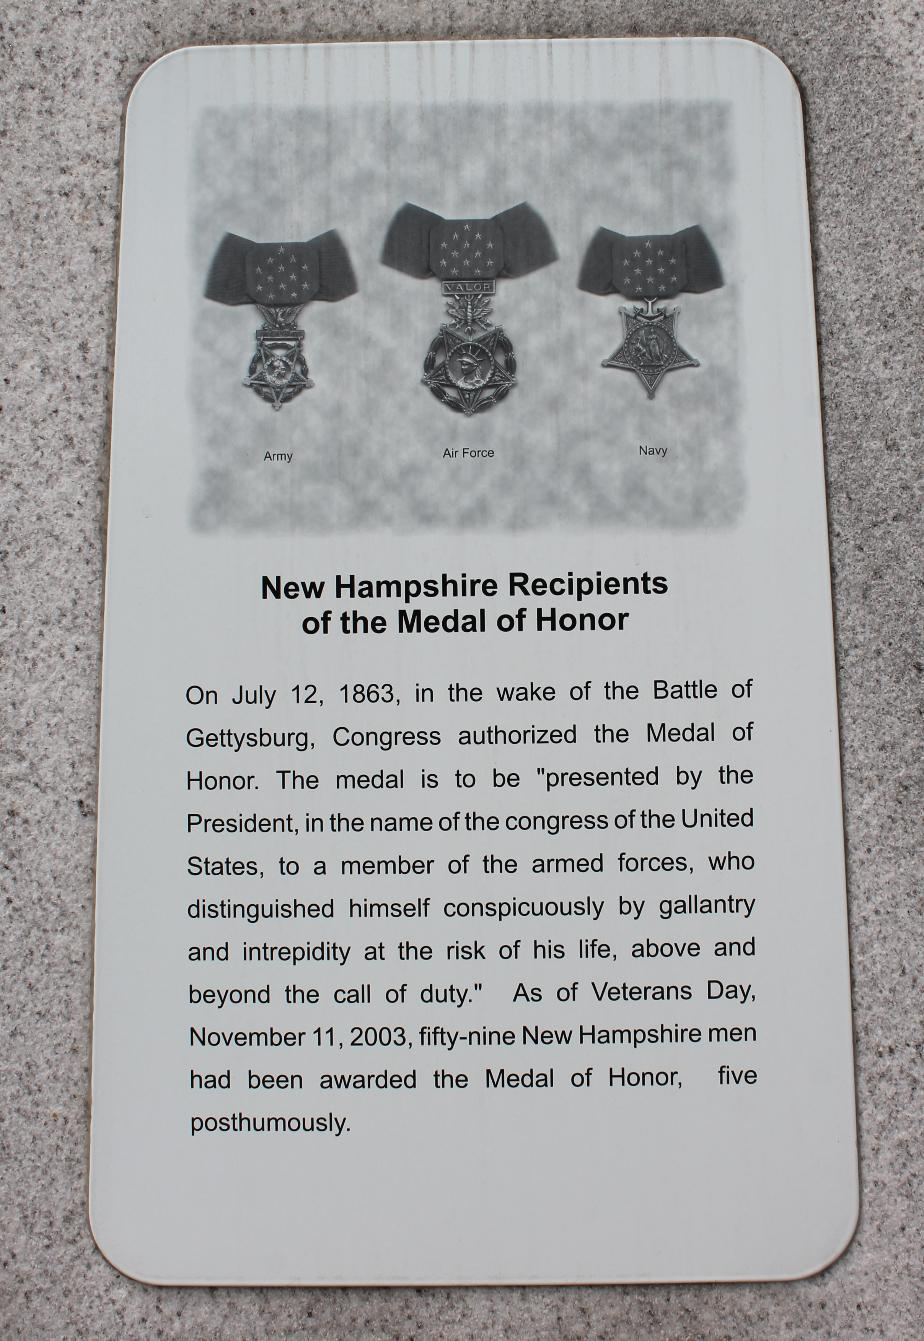 NH State Veterans Cemetery - NH Recipients of the Medal of Honor